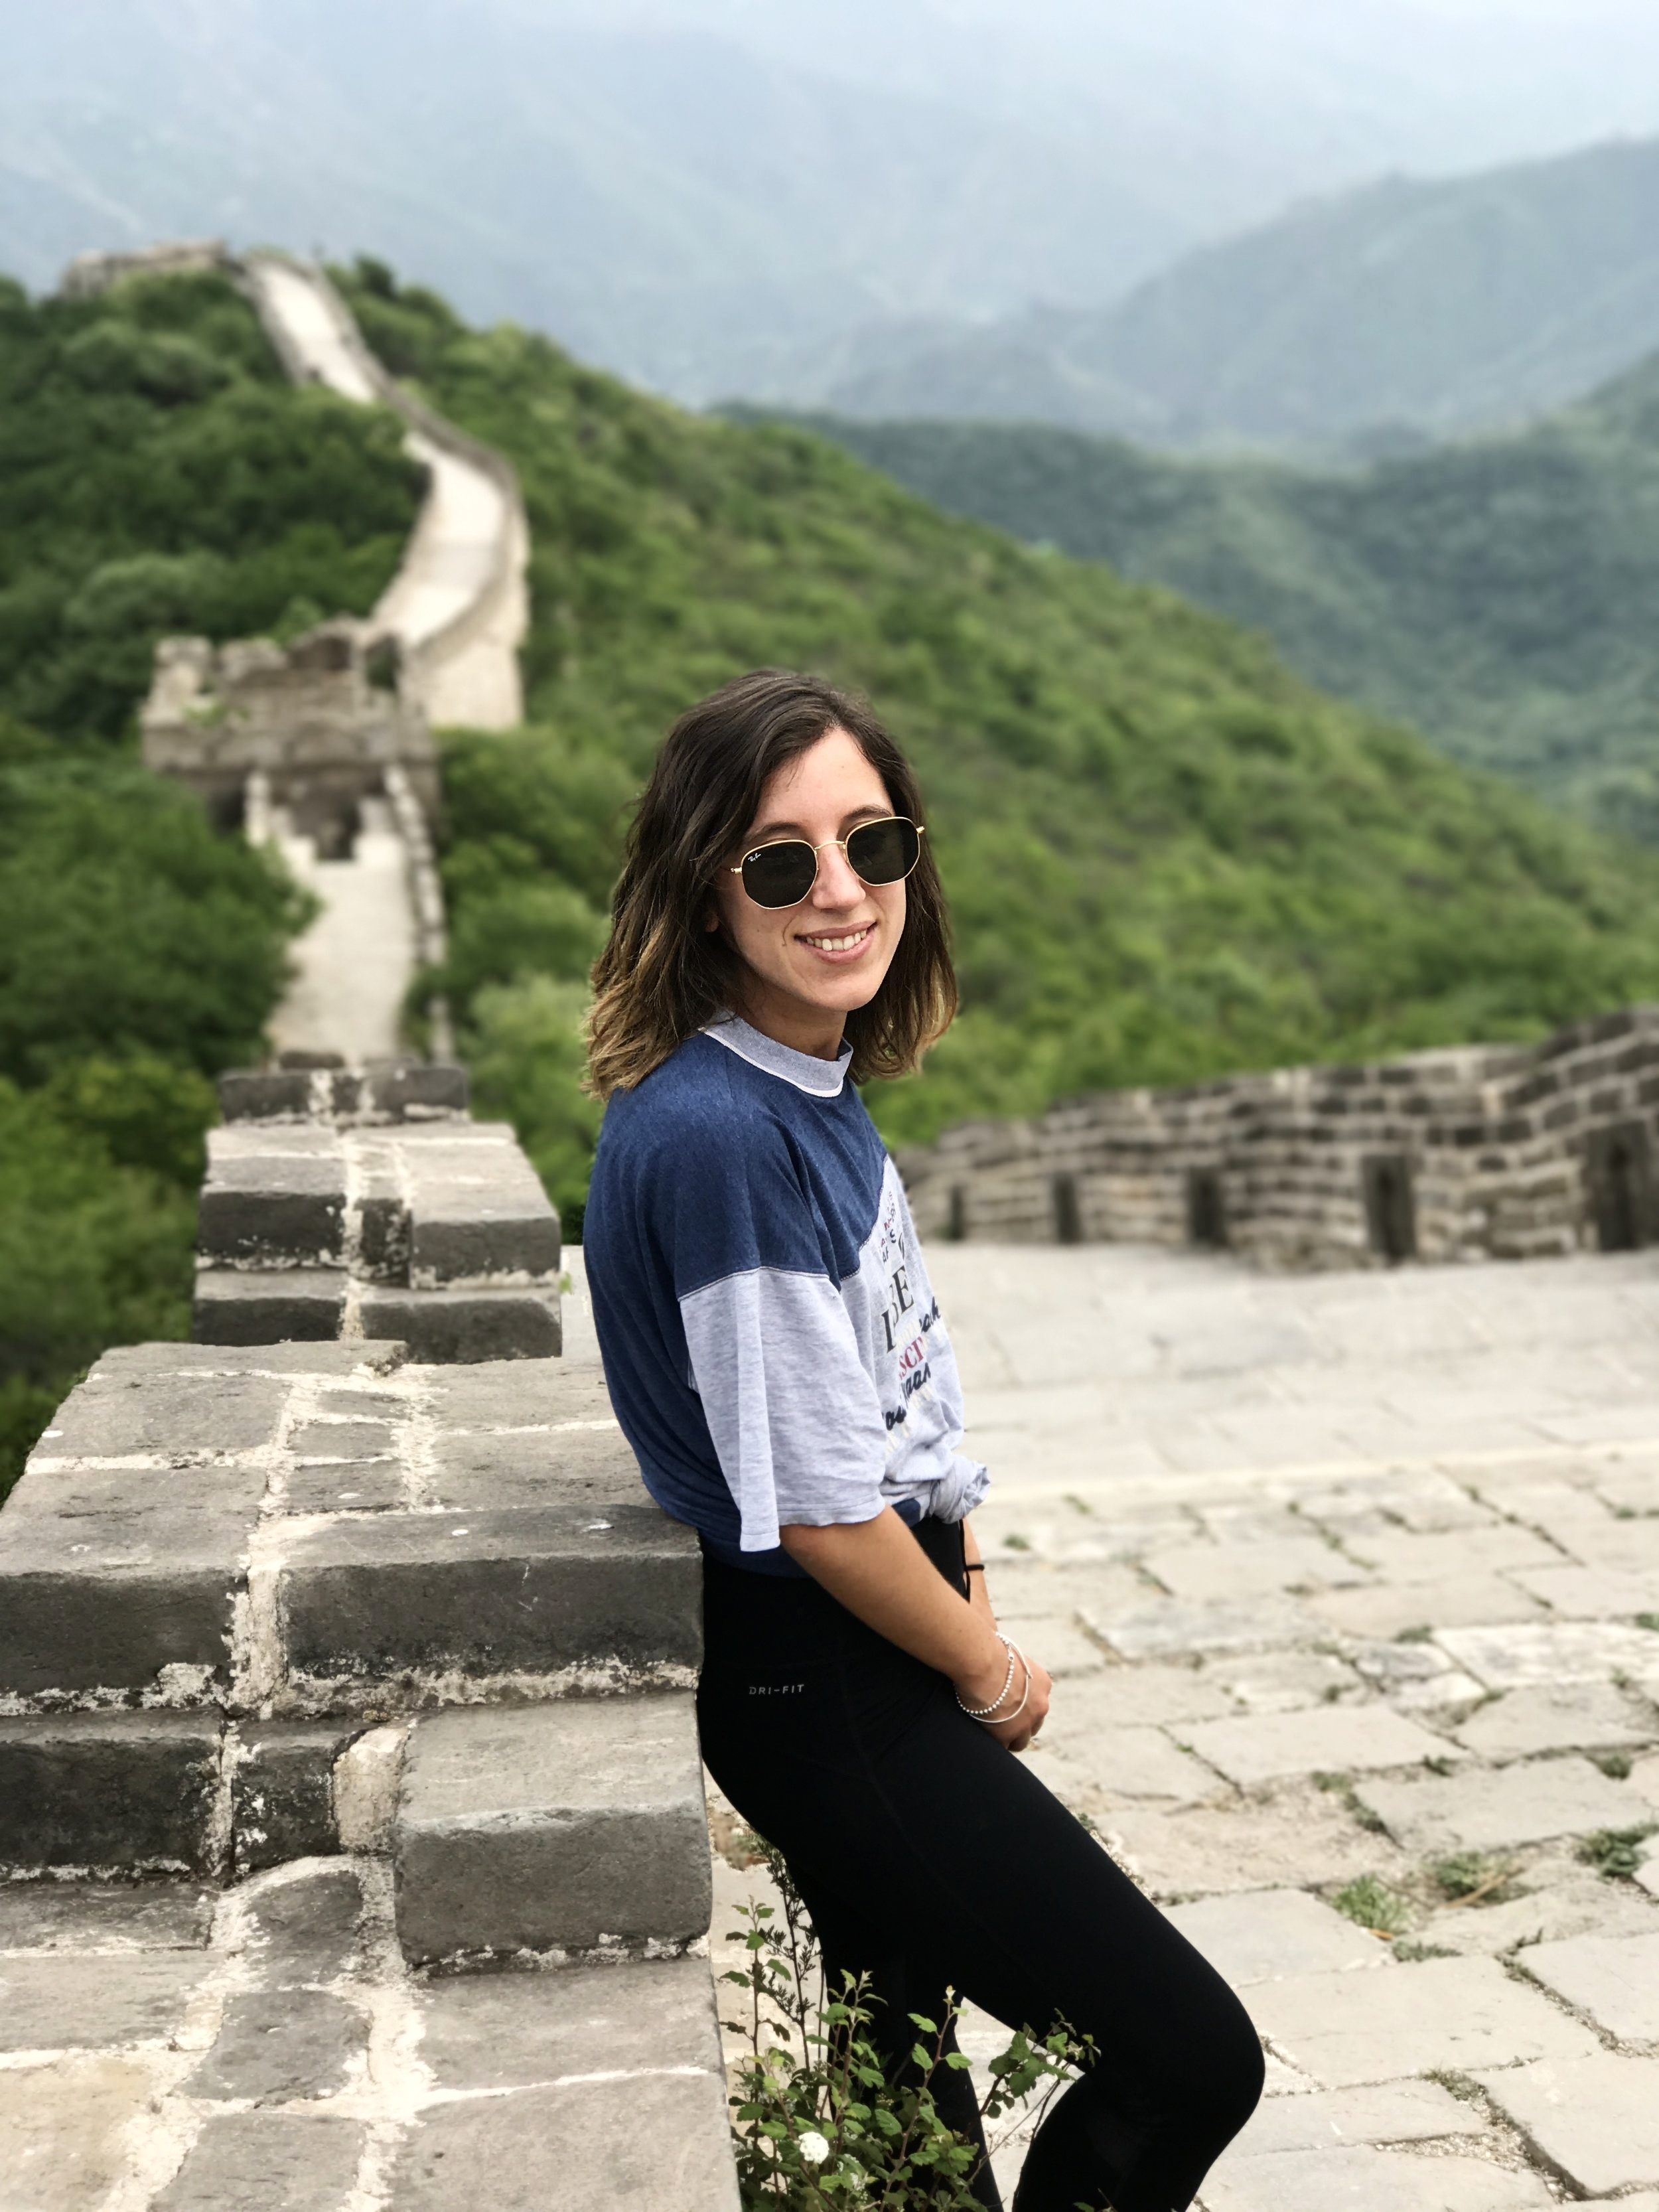 Beautiful Escape - A journey through the Great Wall of China.